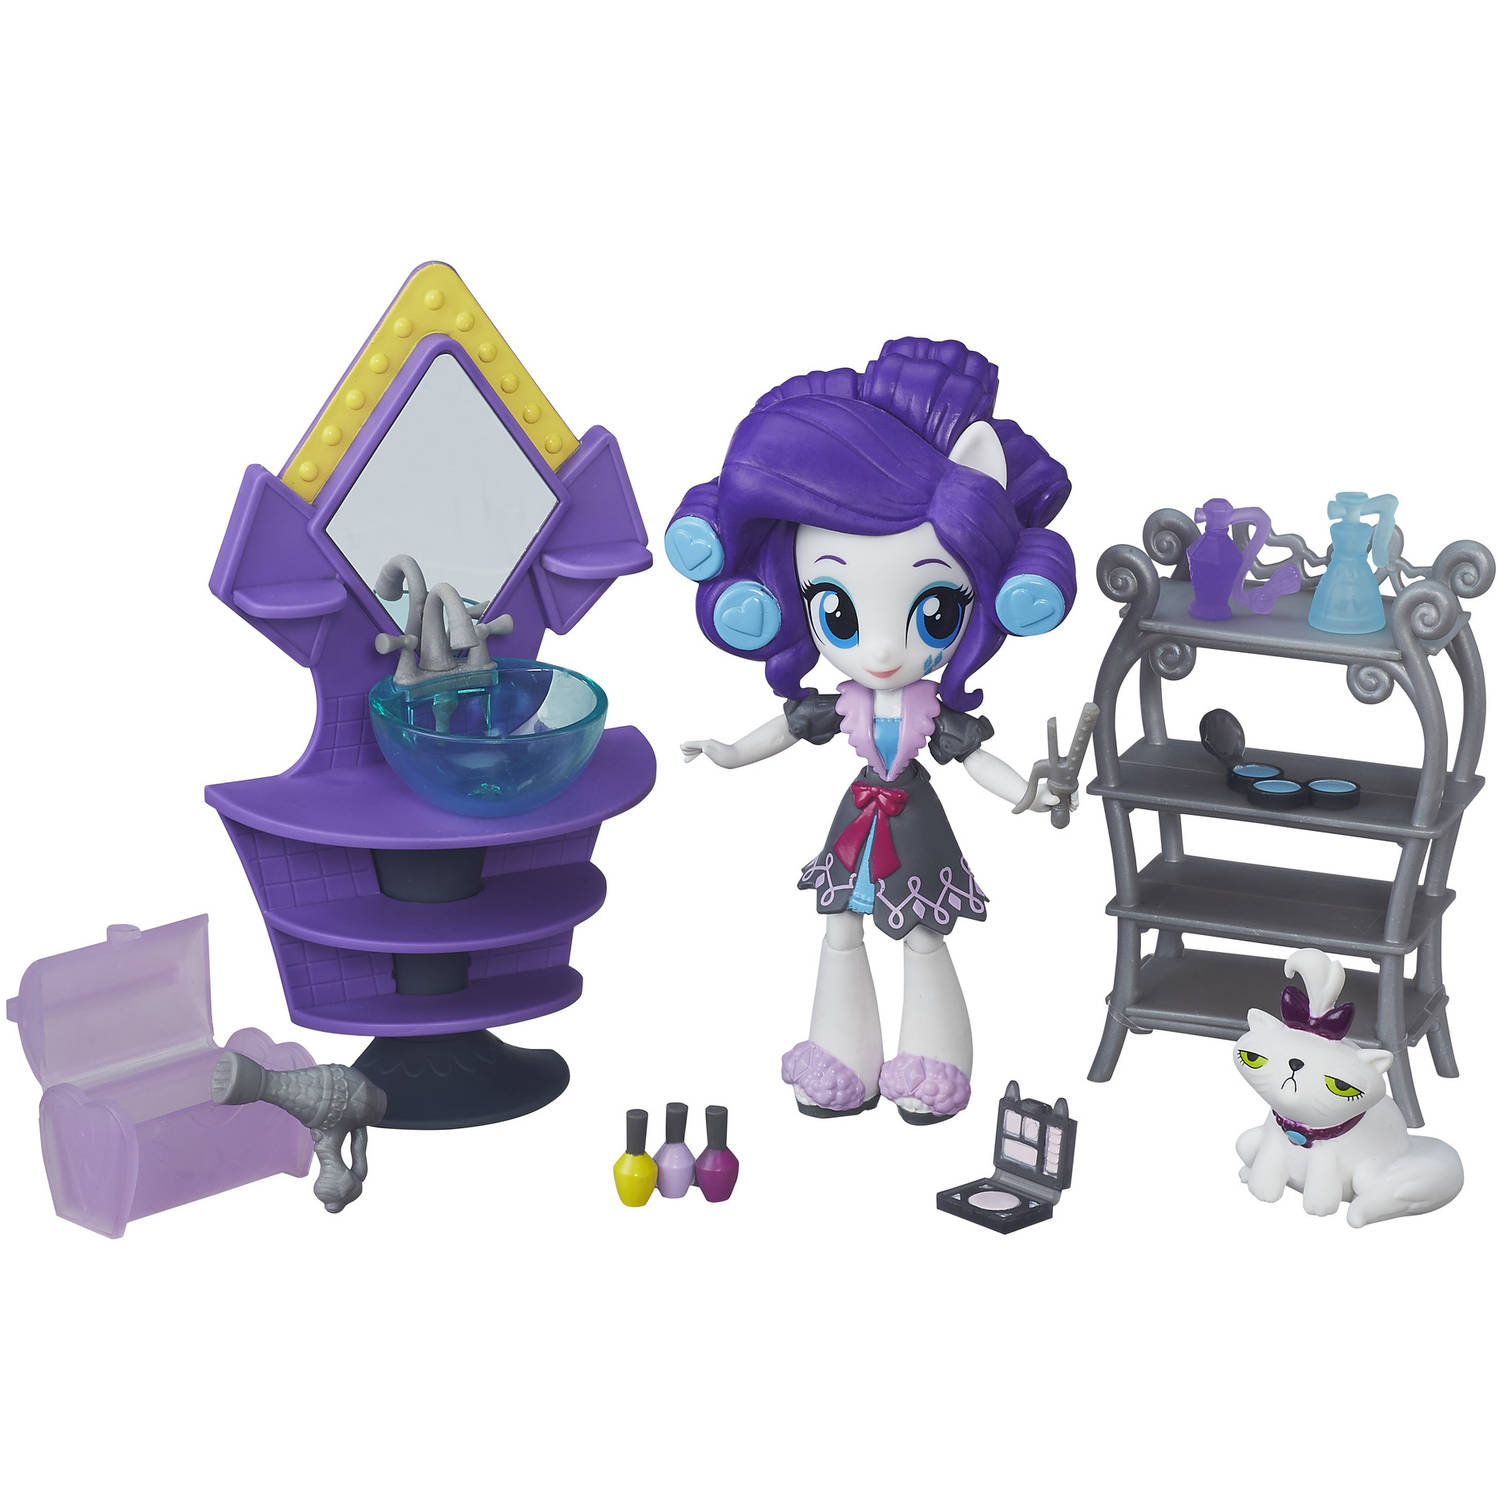 My Little Pony Equestria Girls Minis Rarity Slumber Party Beauty Set by Hasbro